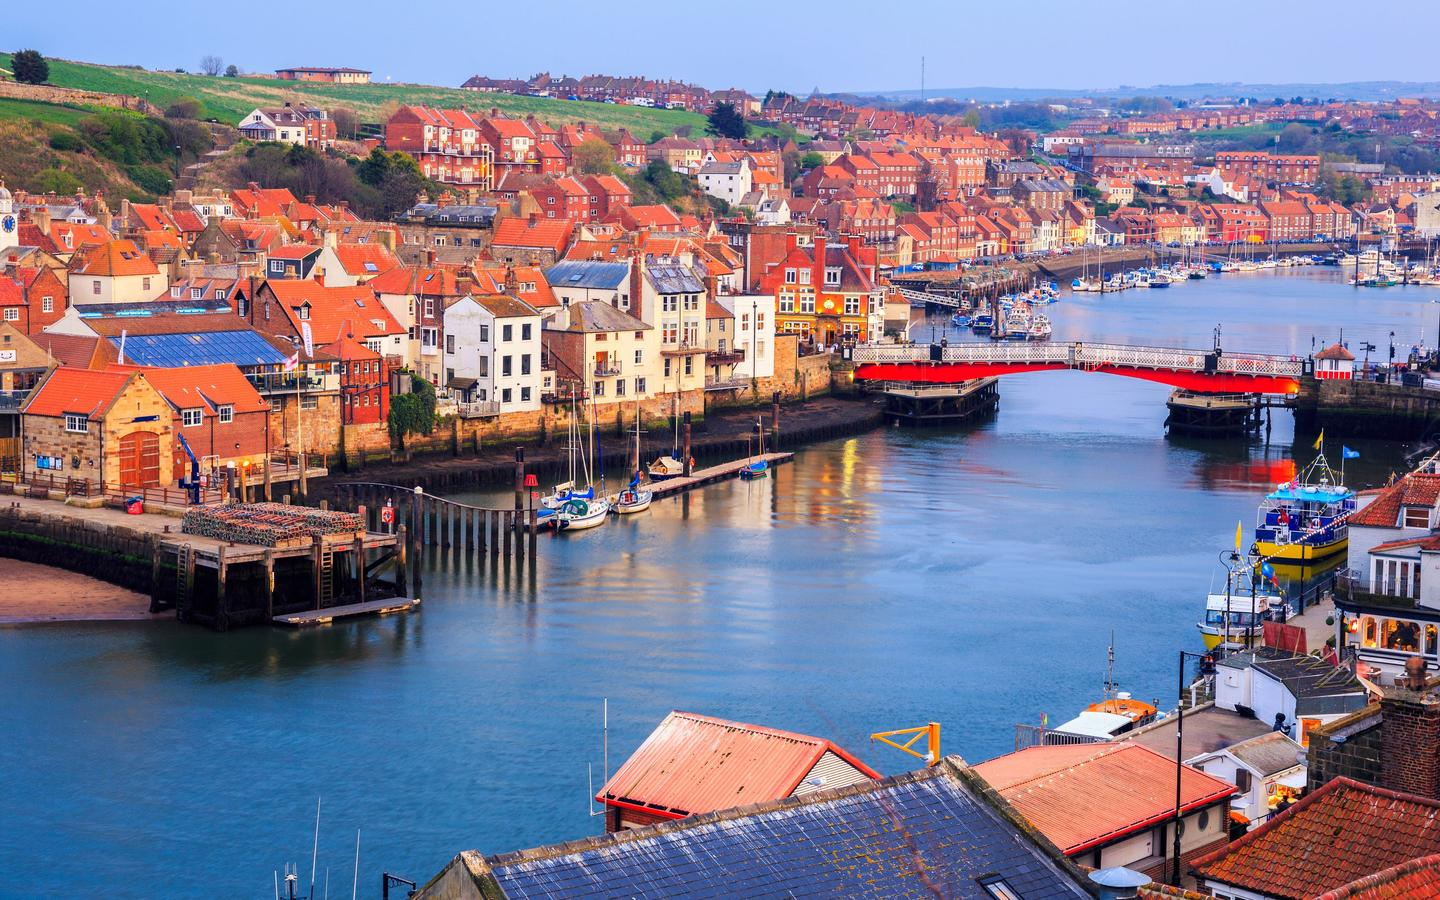 Whitby hotellia